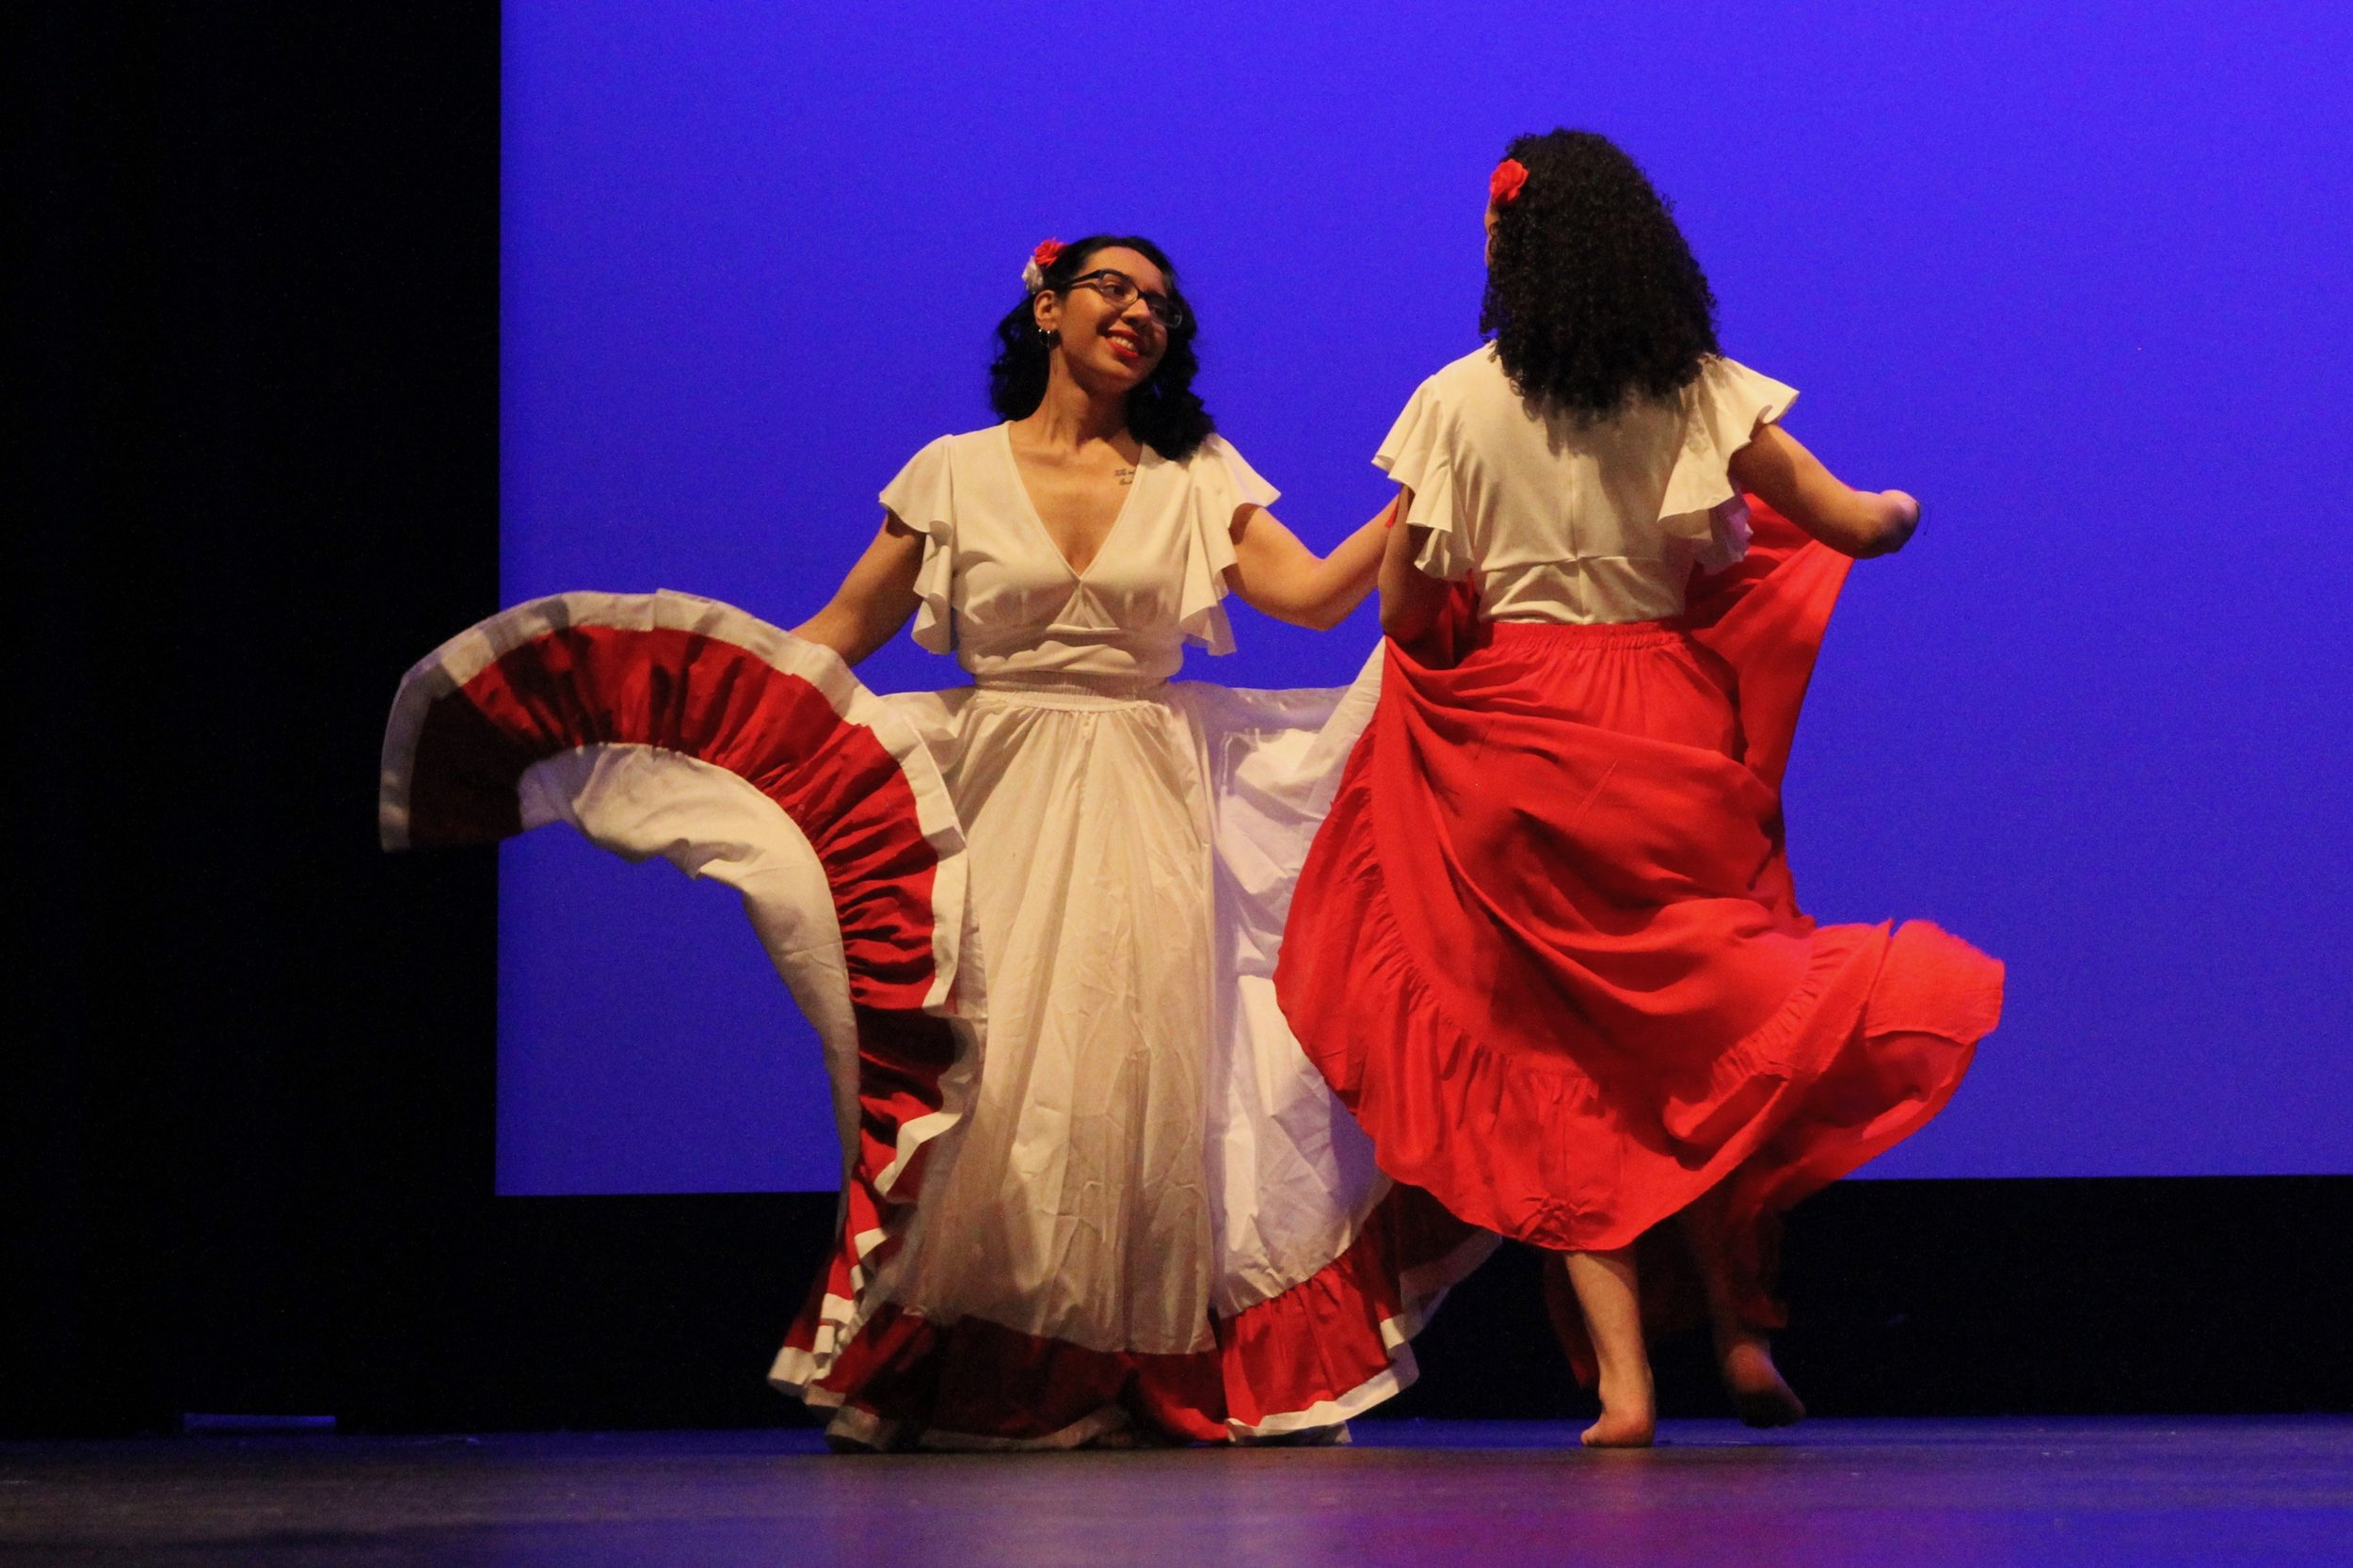 The Le Lo Lai women dazzle the audience with their elegant flowing skirts while dancing a Puerto Rican dance